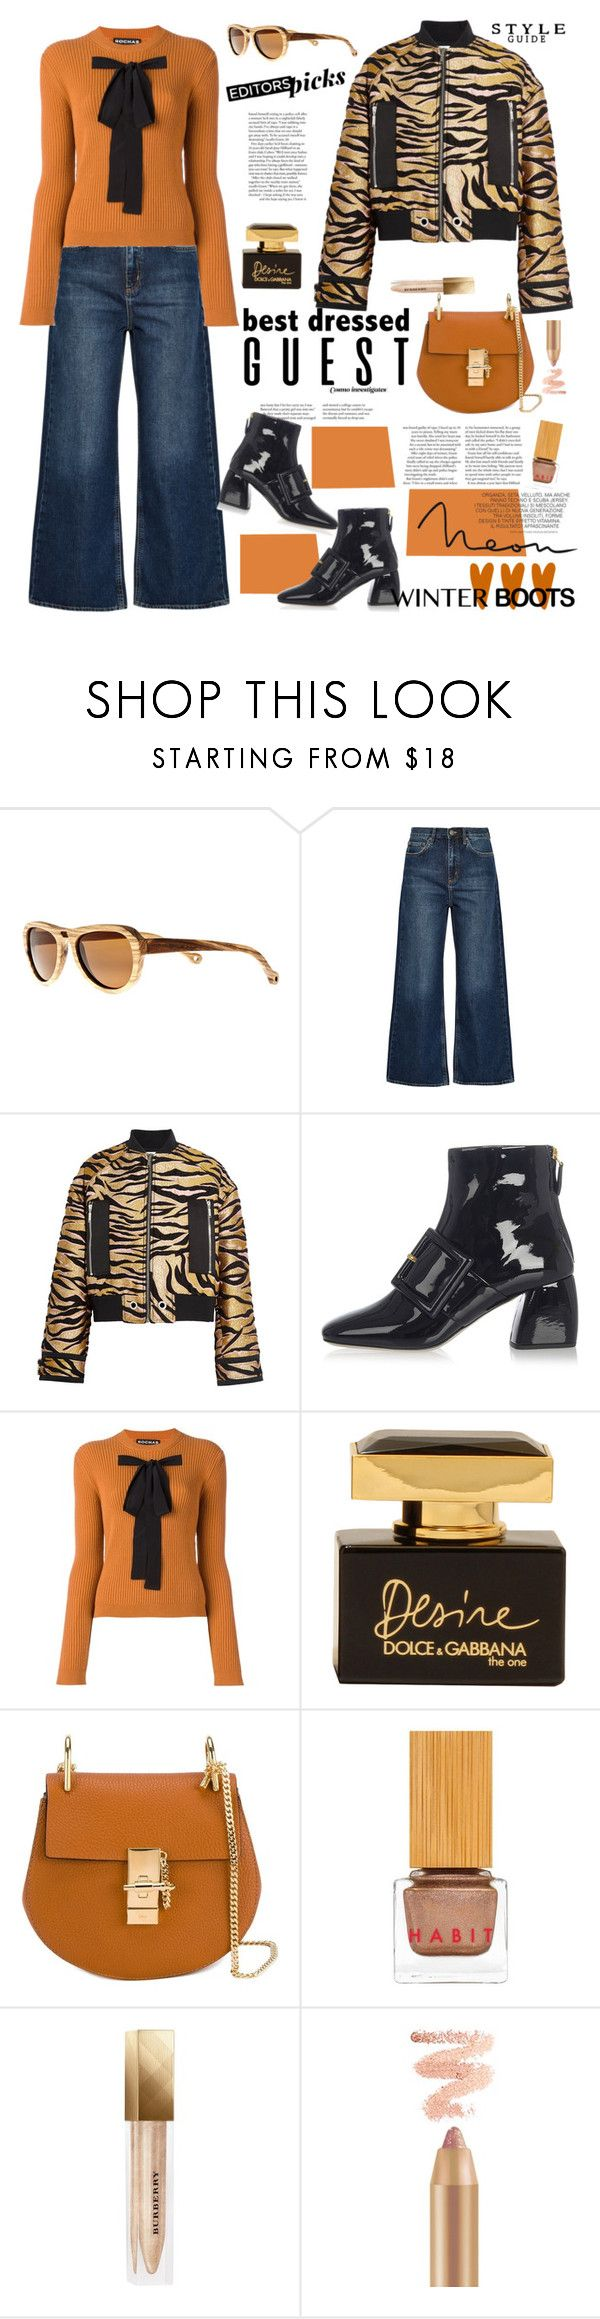 """Perfect Pair : Wide leg jeans and ankle boots"" by ellie366 ❤ liked on Polyvore featuring Earth, M.i.h Jeans, Kenzo, Miu Miu, Rochas, Dolce&Gabbana, Chloé, Habit Cosmetics, House of Fraser and Burberry"